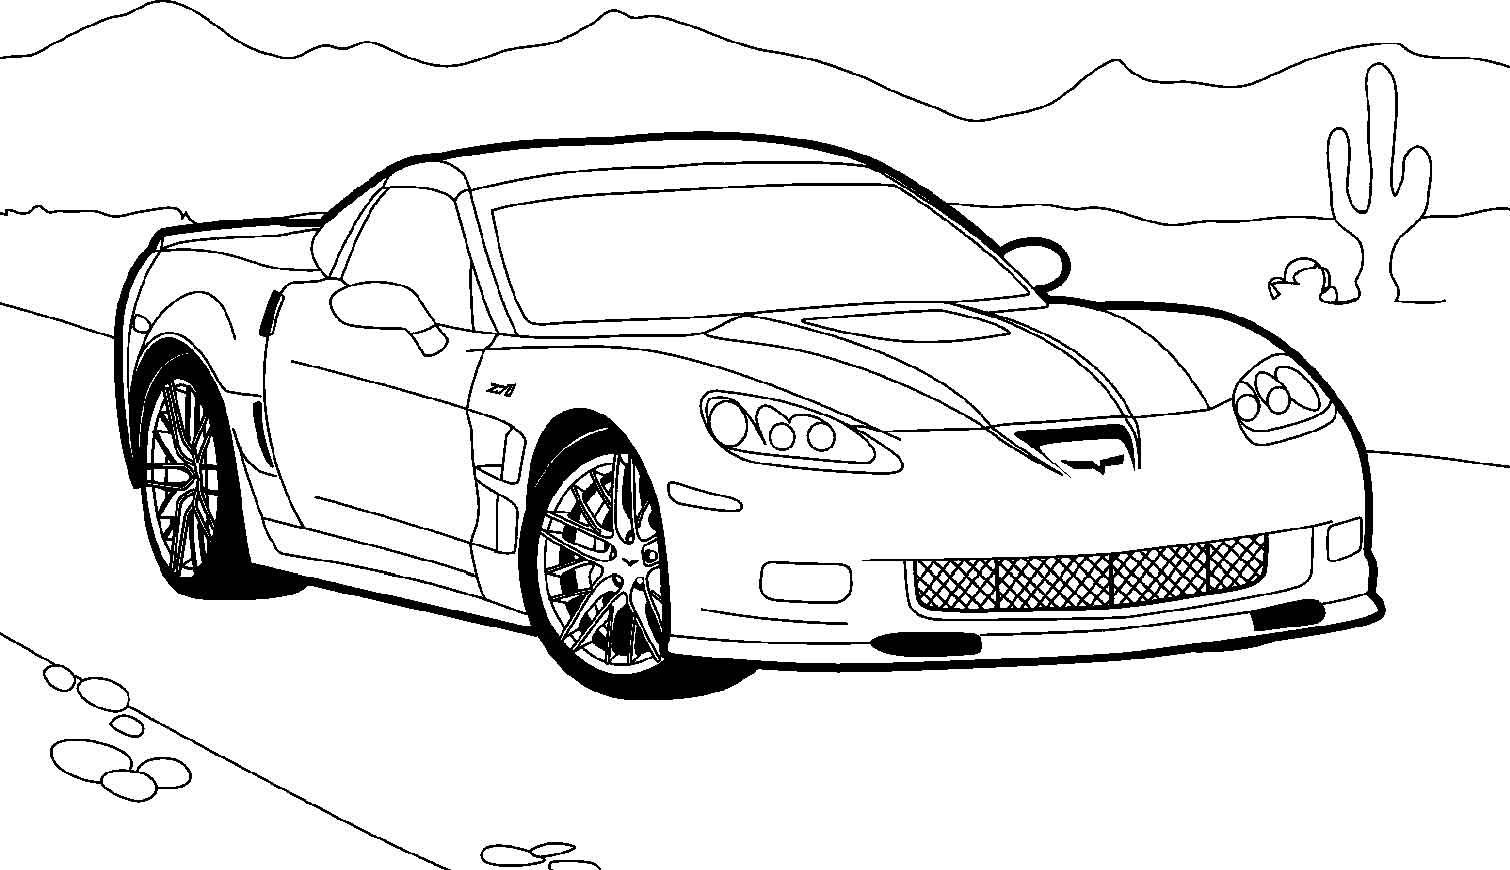 1510x870 Image Of 39 Car Clipart Black And White Images